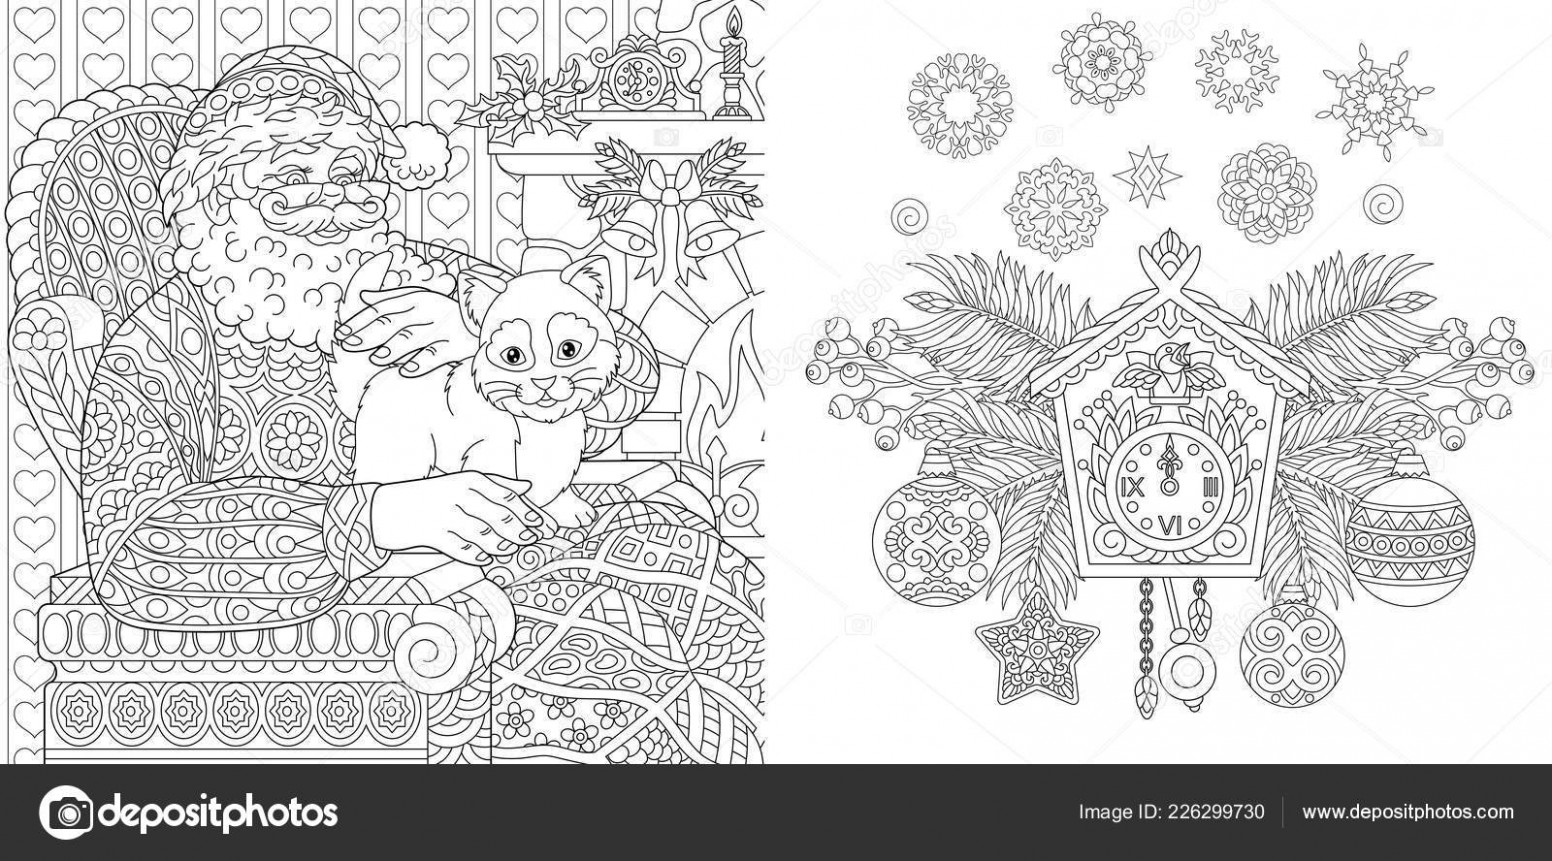 Christmas Coloring Book Christmas Colouring Pages Santa Claus Cat ...